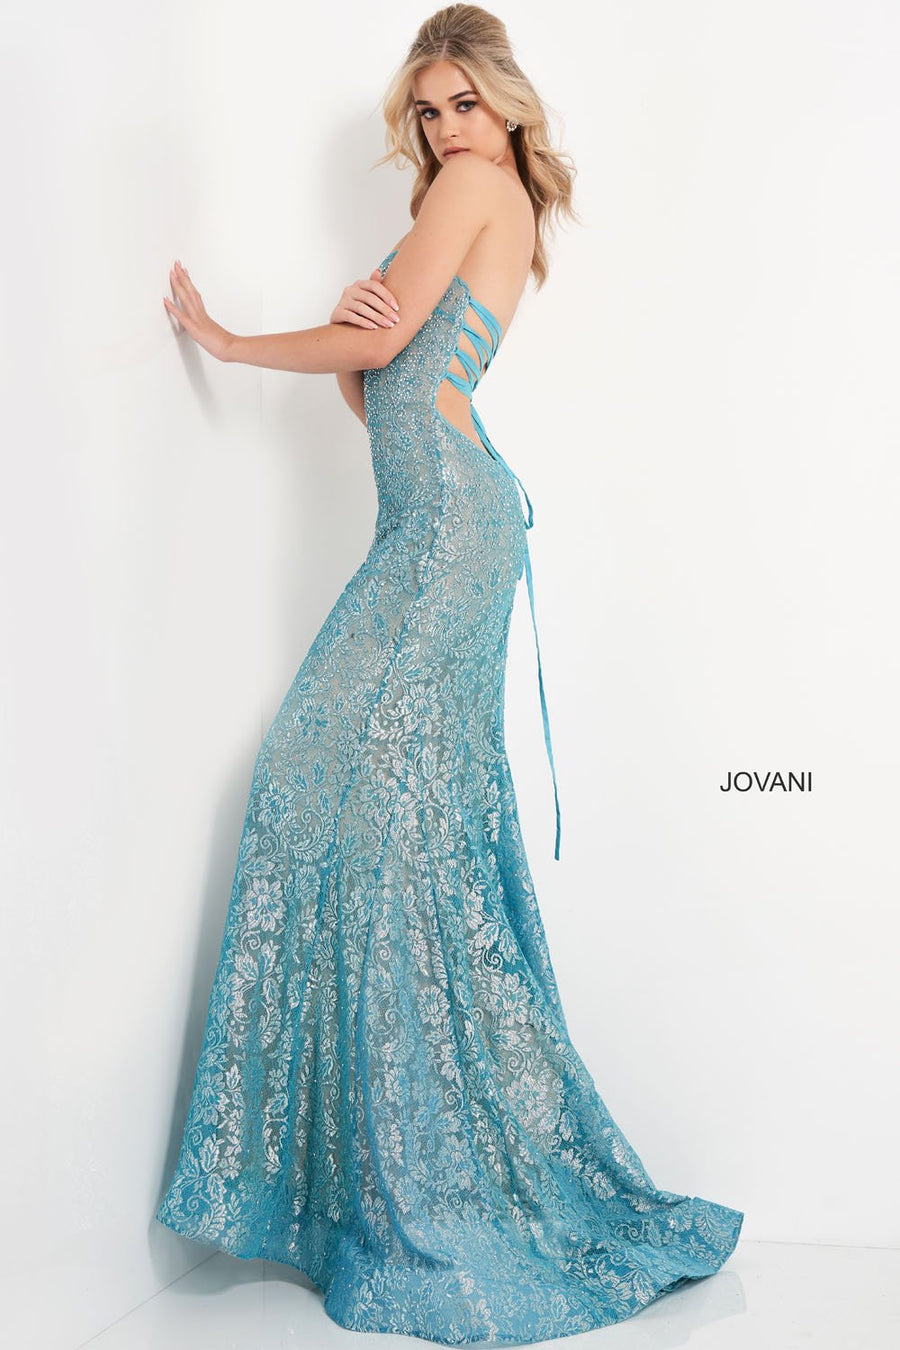 Jovani 06586 prom dress images.  Jovani 06586 is available in these colors: Turquoise Silver, Silver Silver, Black Silver, Navy Silver.